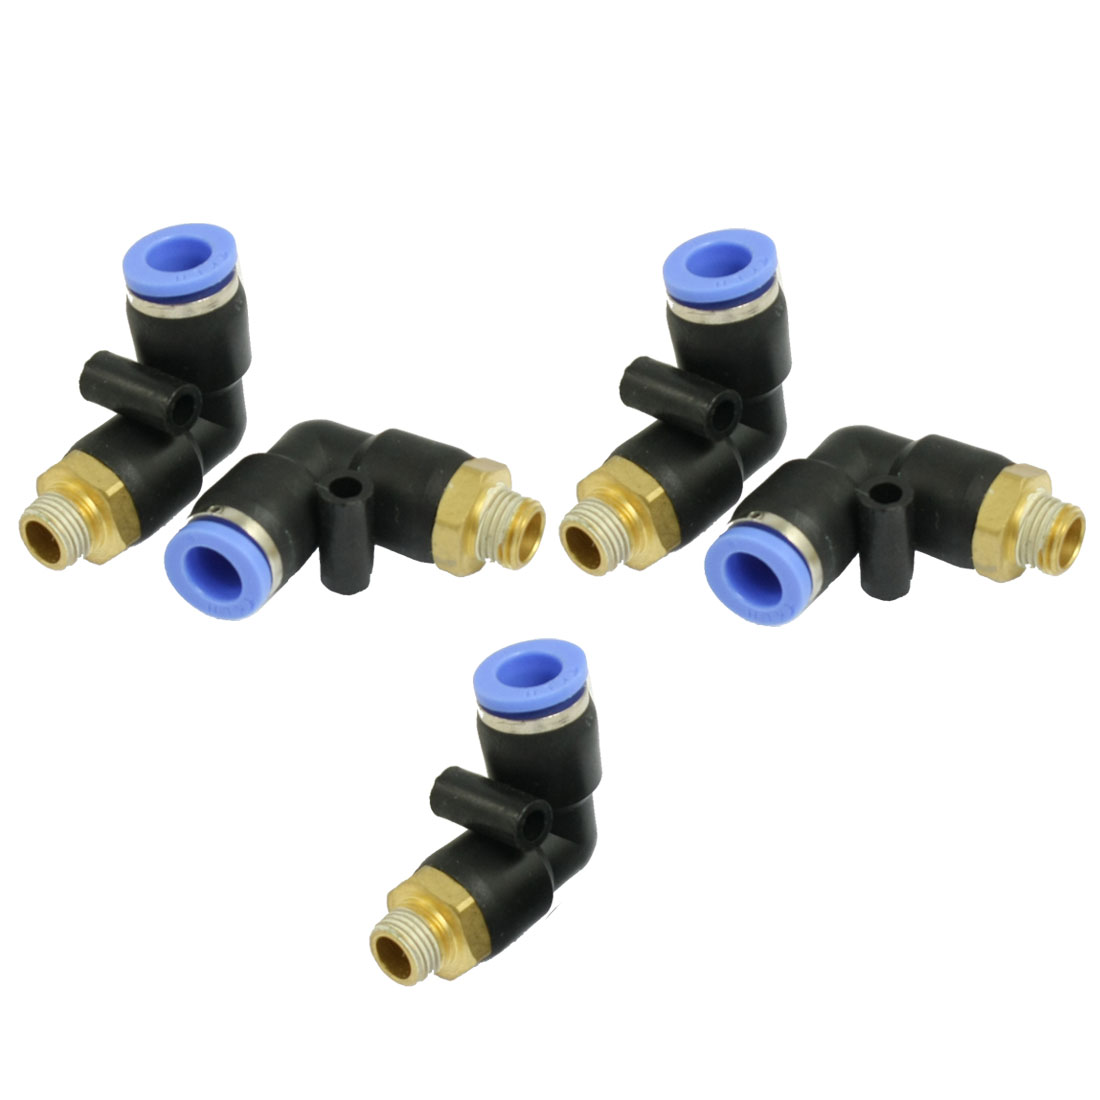 "5 Pcs 1/8"" PT Thread to 8mm Push In Fitting Quick Connector"